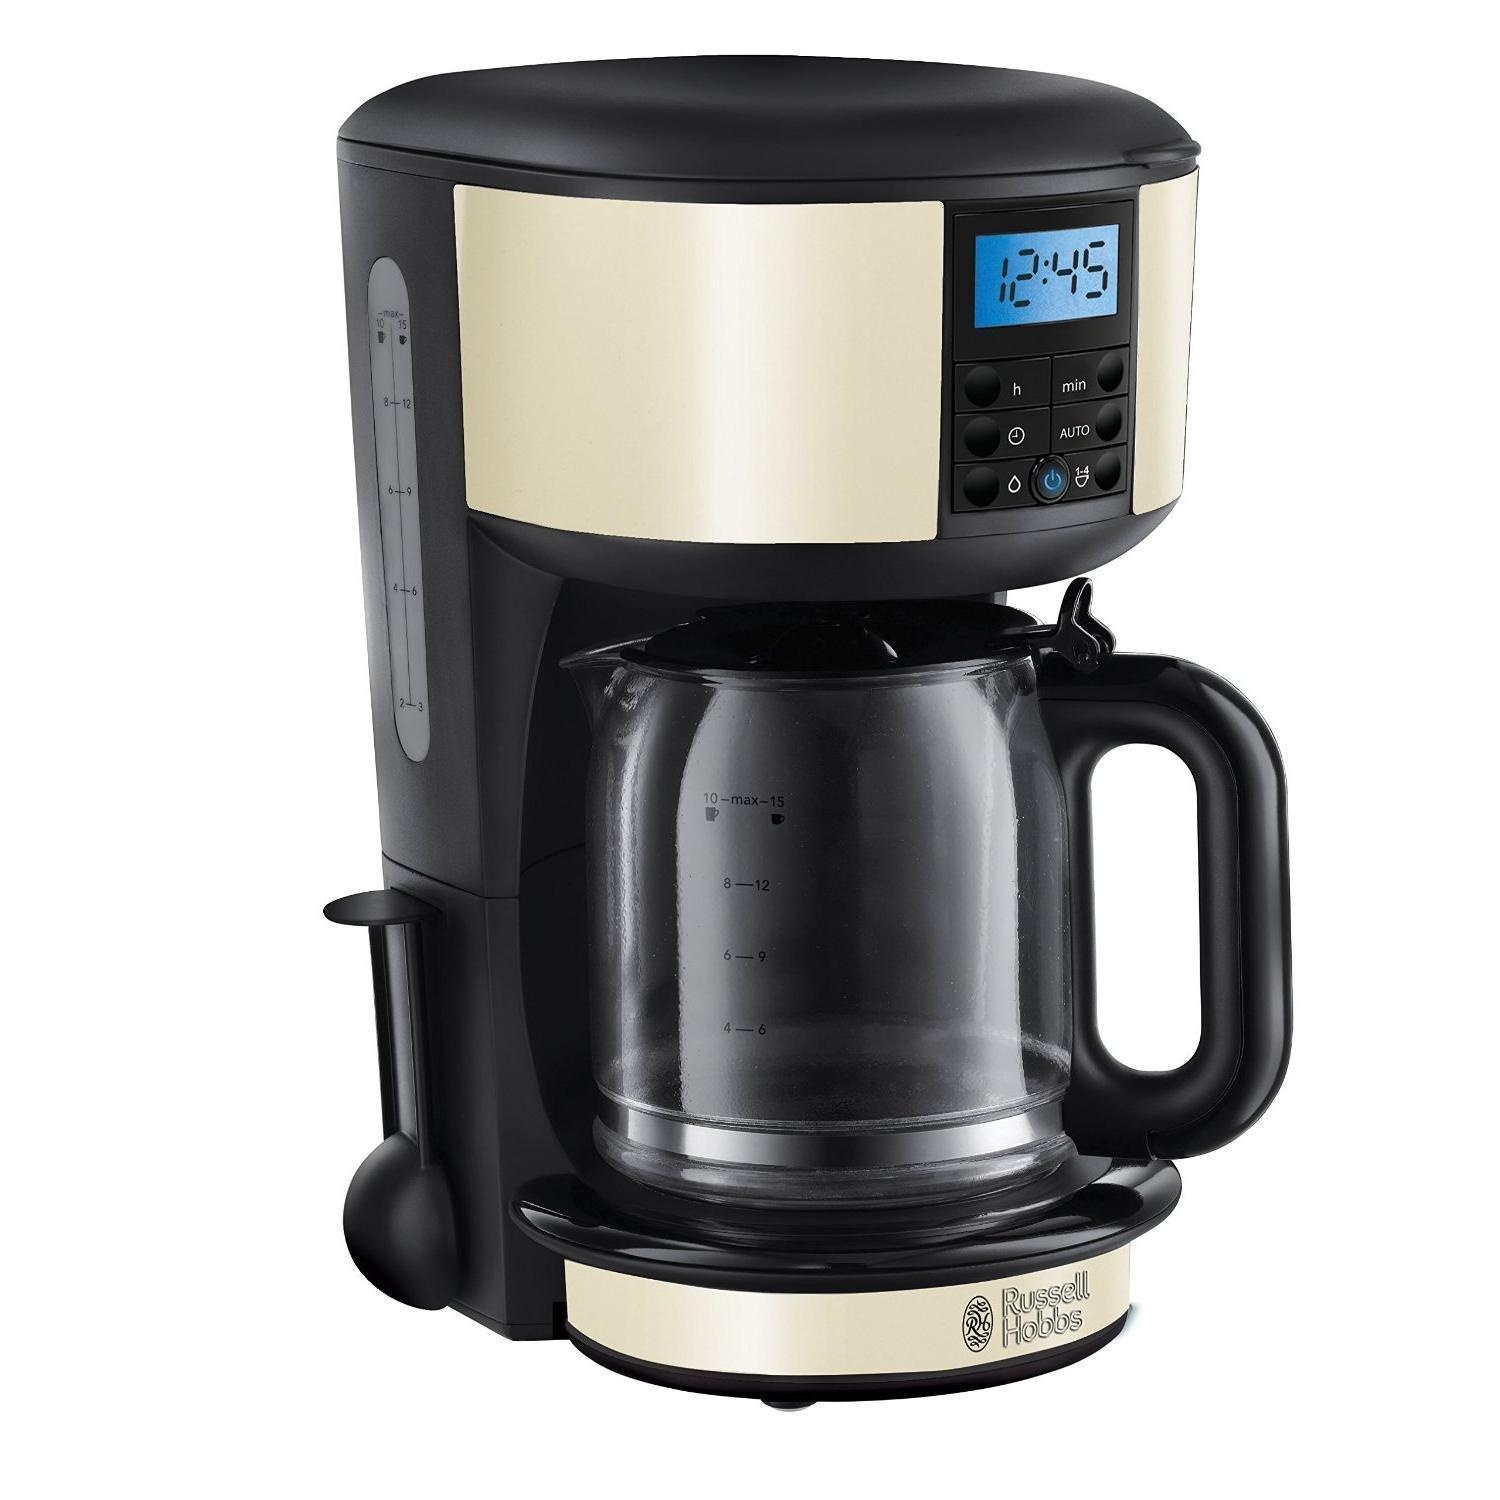 Russell Hobbs - 20683 - Cafetière programmable Legacy crème